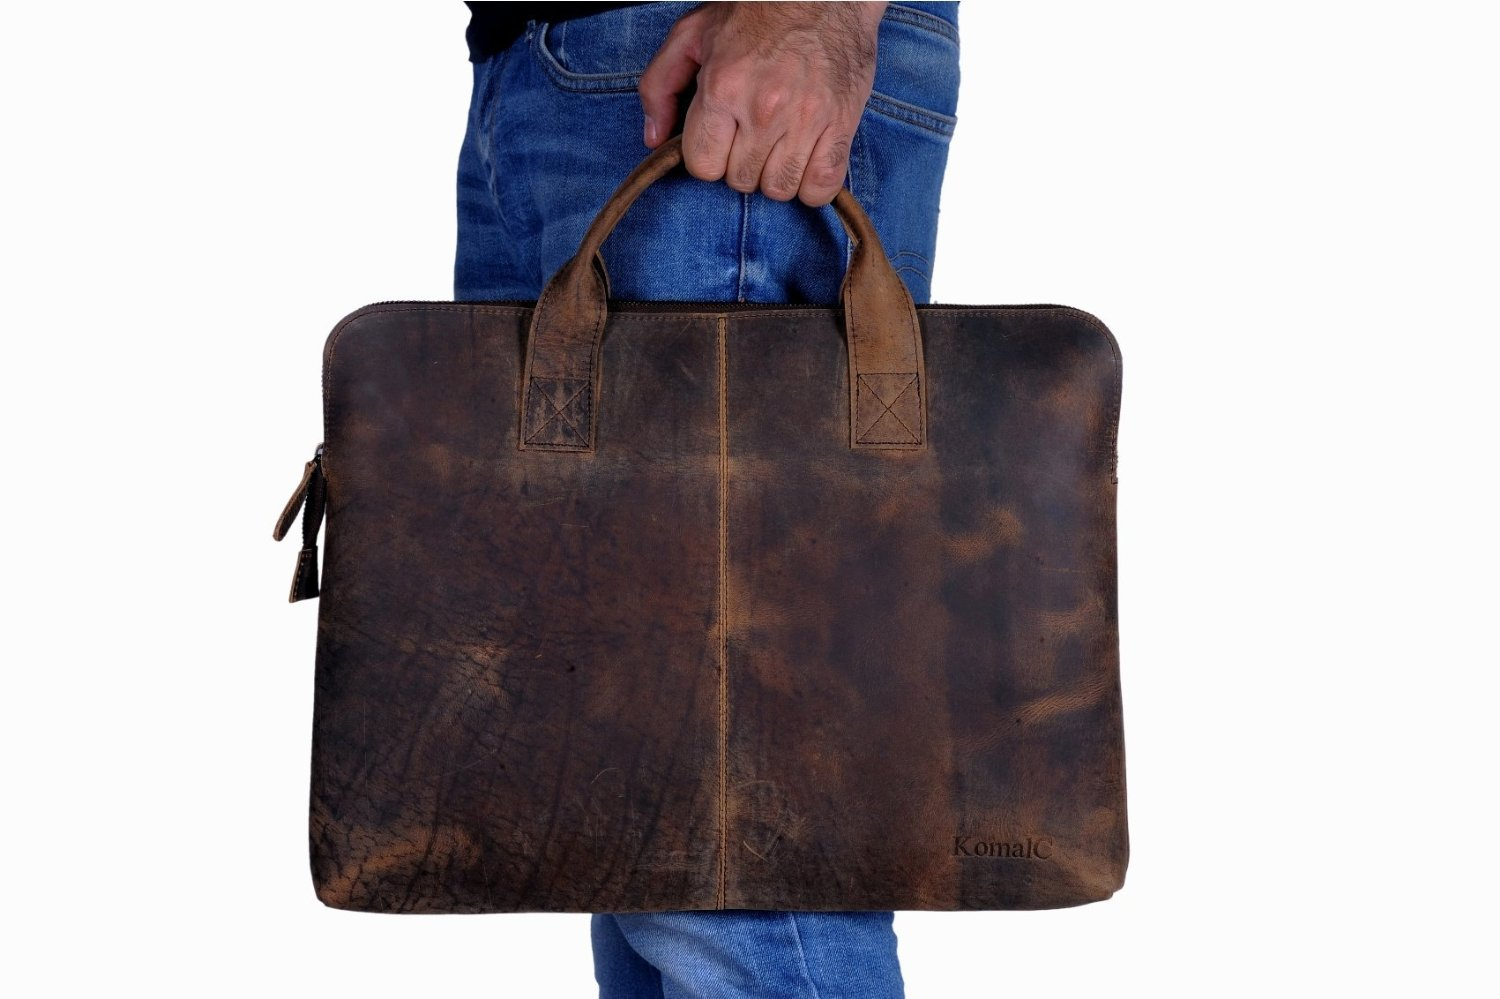 49d26d8ca193 Buy KomalC Vintage Hunter Leather Laptop Macbook Sleeve Slim Laptop Bag in  Cheap Price on m.alibaba.com